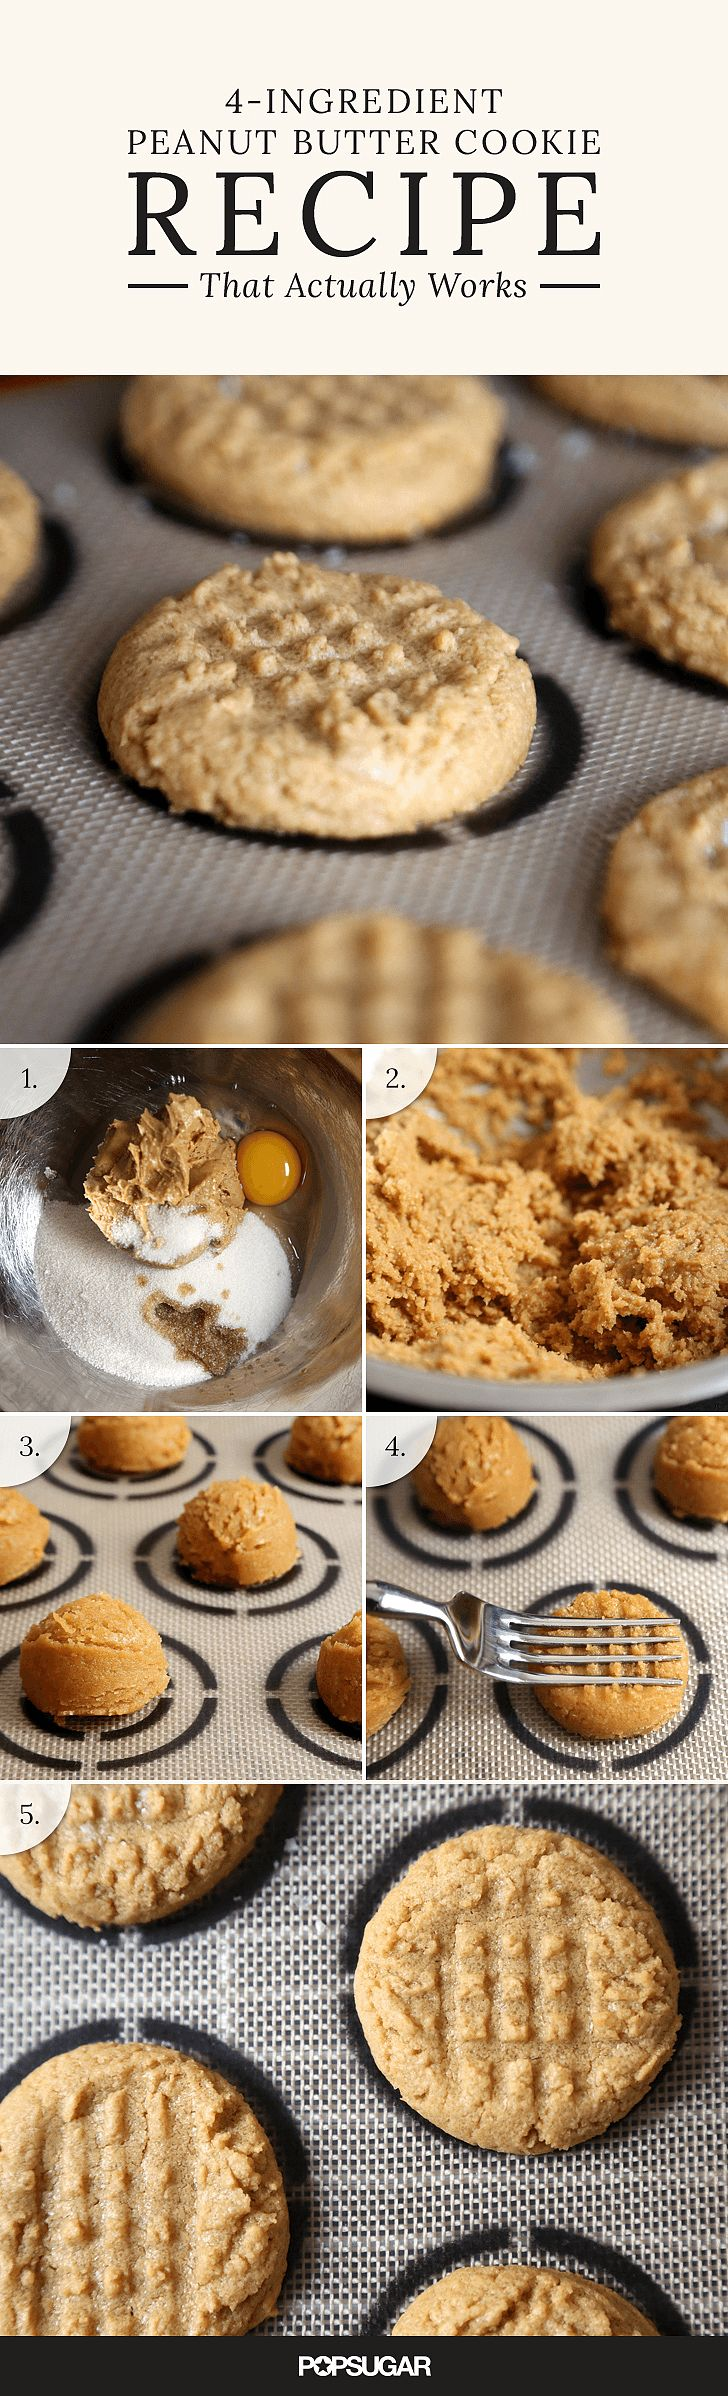 The easiest ever peanut butter cookies will make your taste buds happy. (Shh, they are gluten-free!)